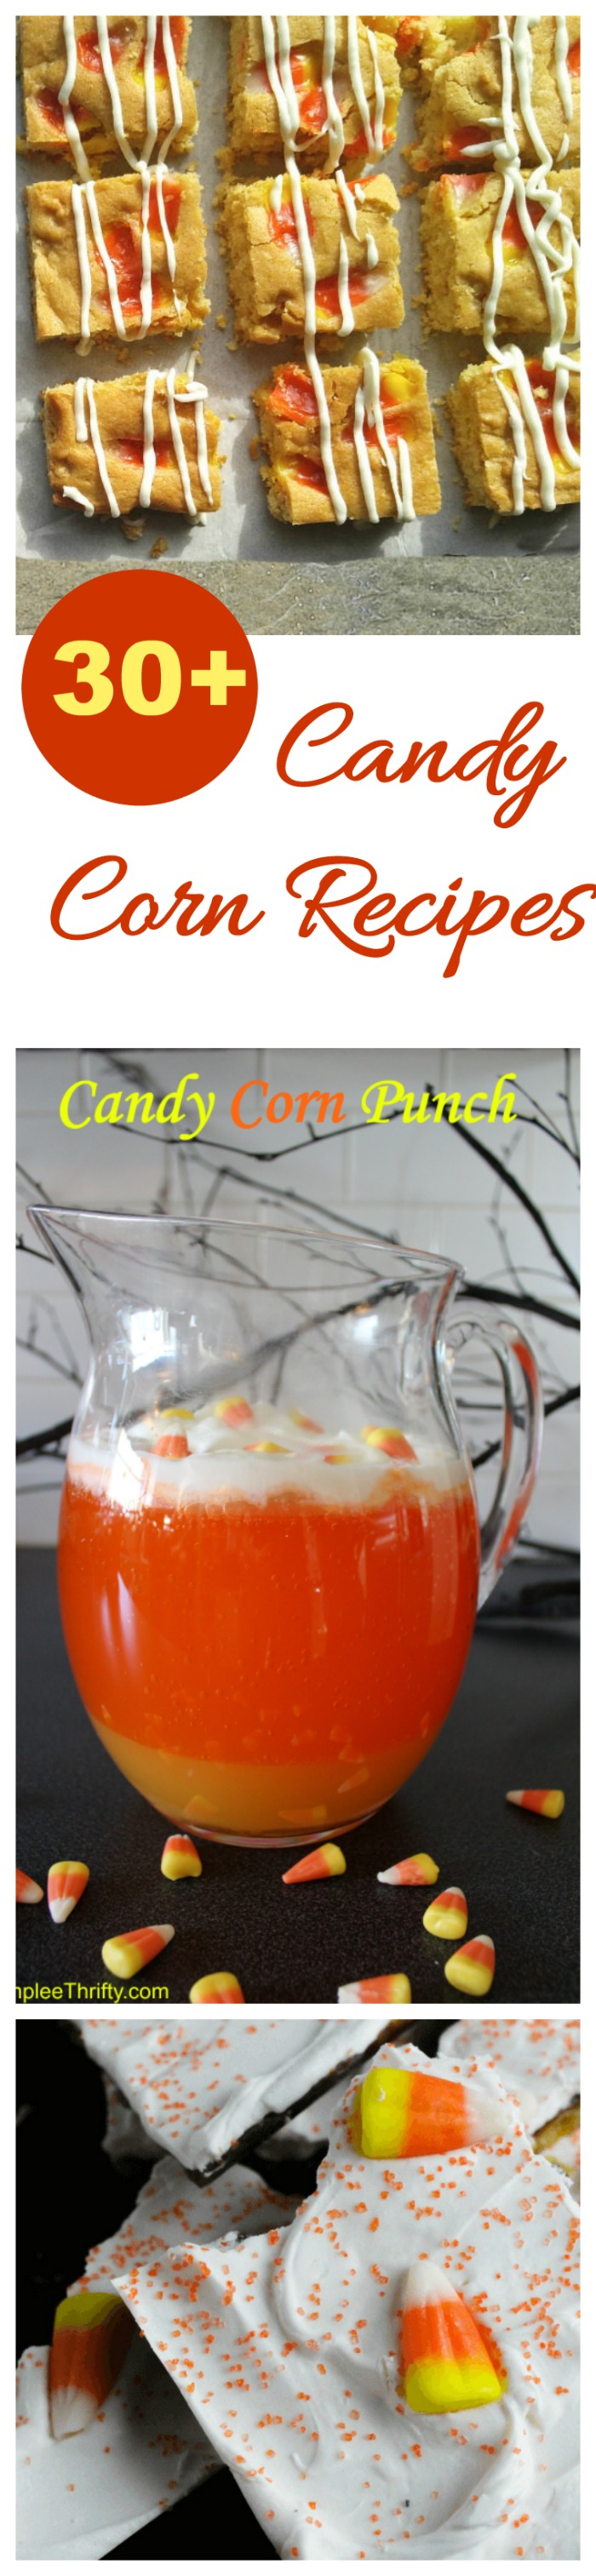 These candy corn recipes take the favorite Fall candy to a whole new level #candycornrecipes #candycorndesserts